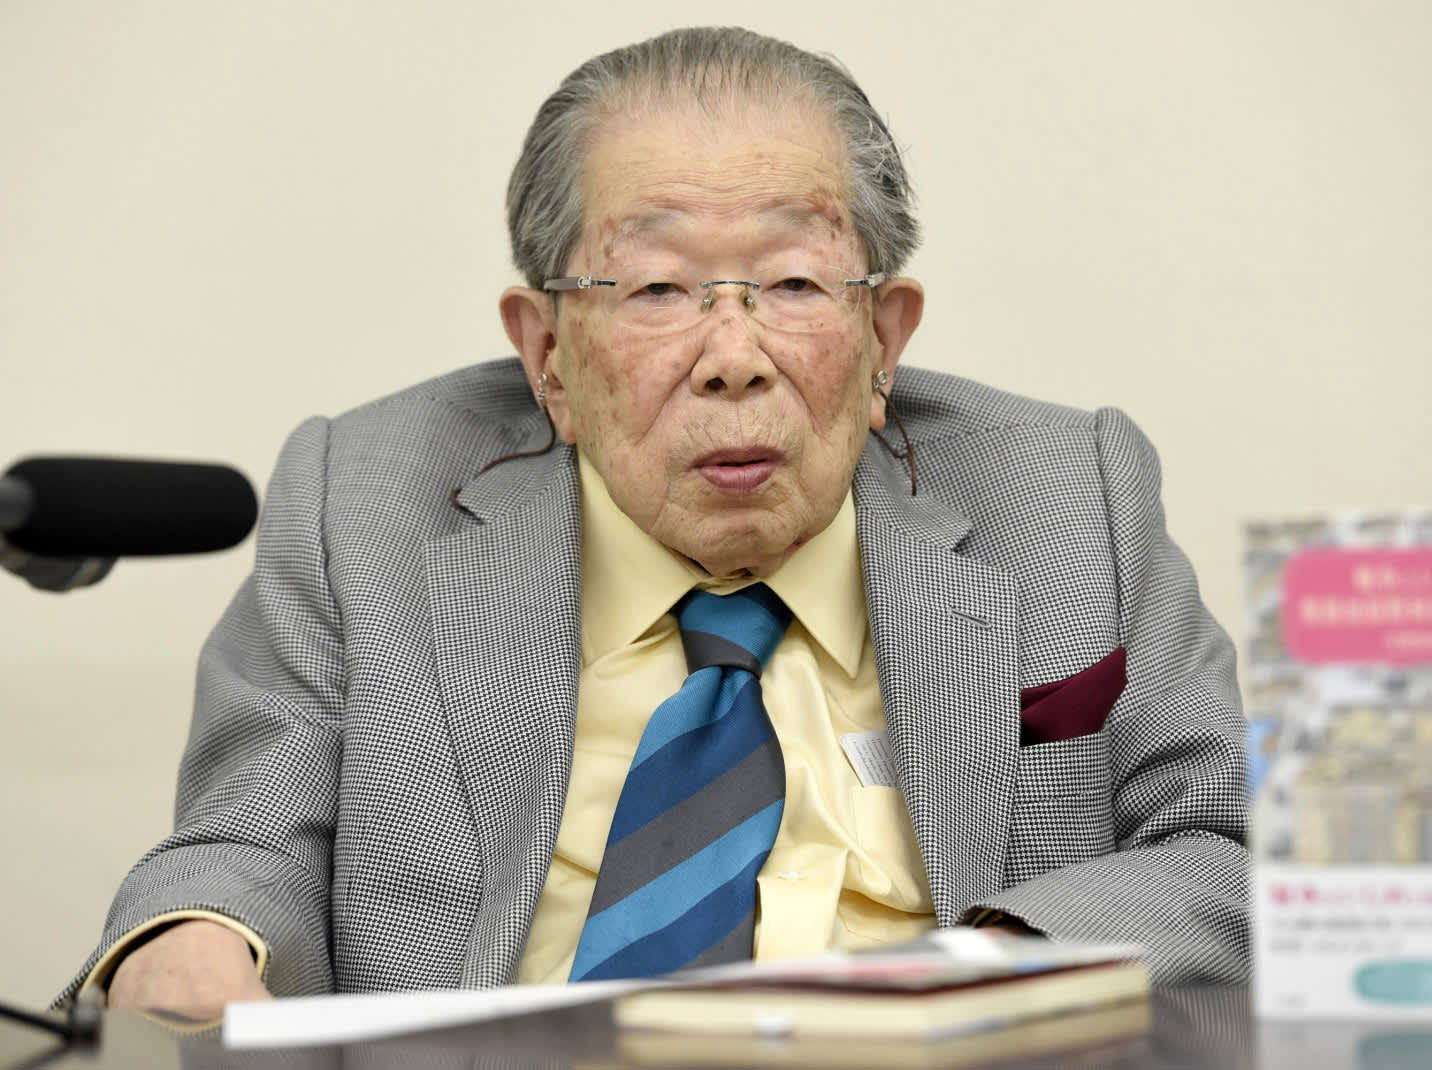 This Japanese longevity expert lived to 105 — here's what he ate every day